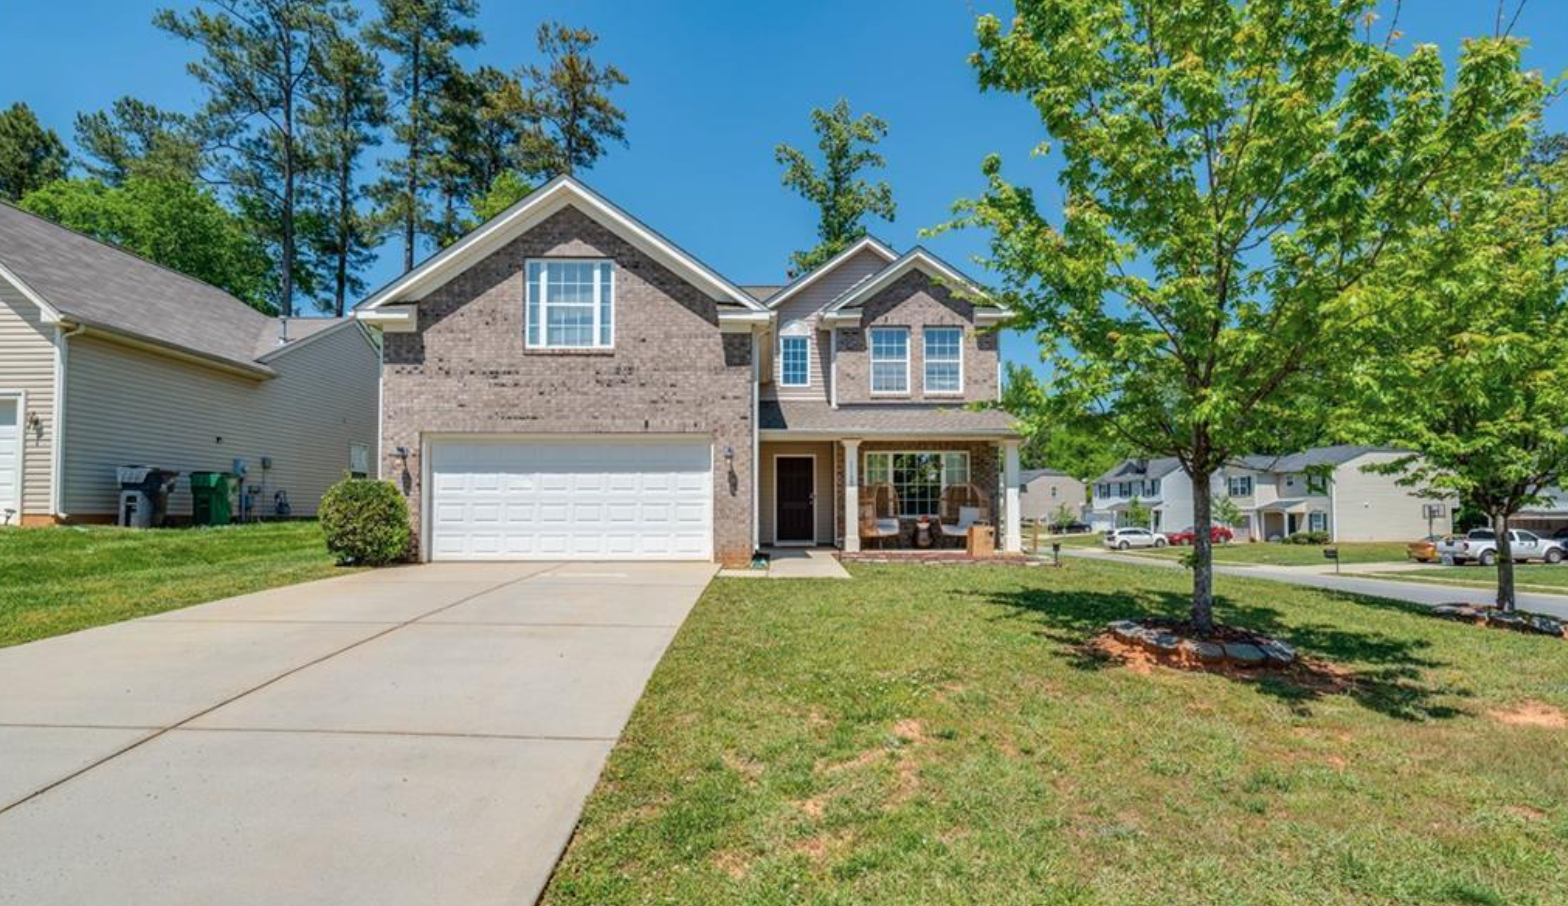 Charlotte, NC real estate investing is buzzing! This month's featured project in the Tar Heel State is currently open for investment with Fund That Flip.